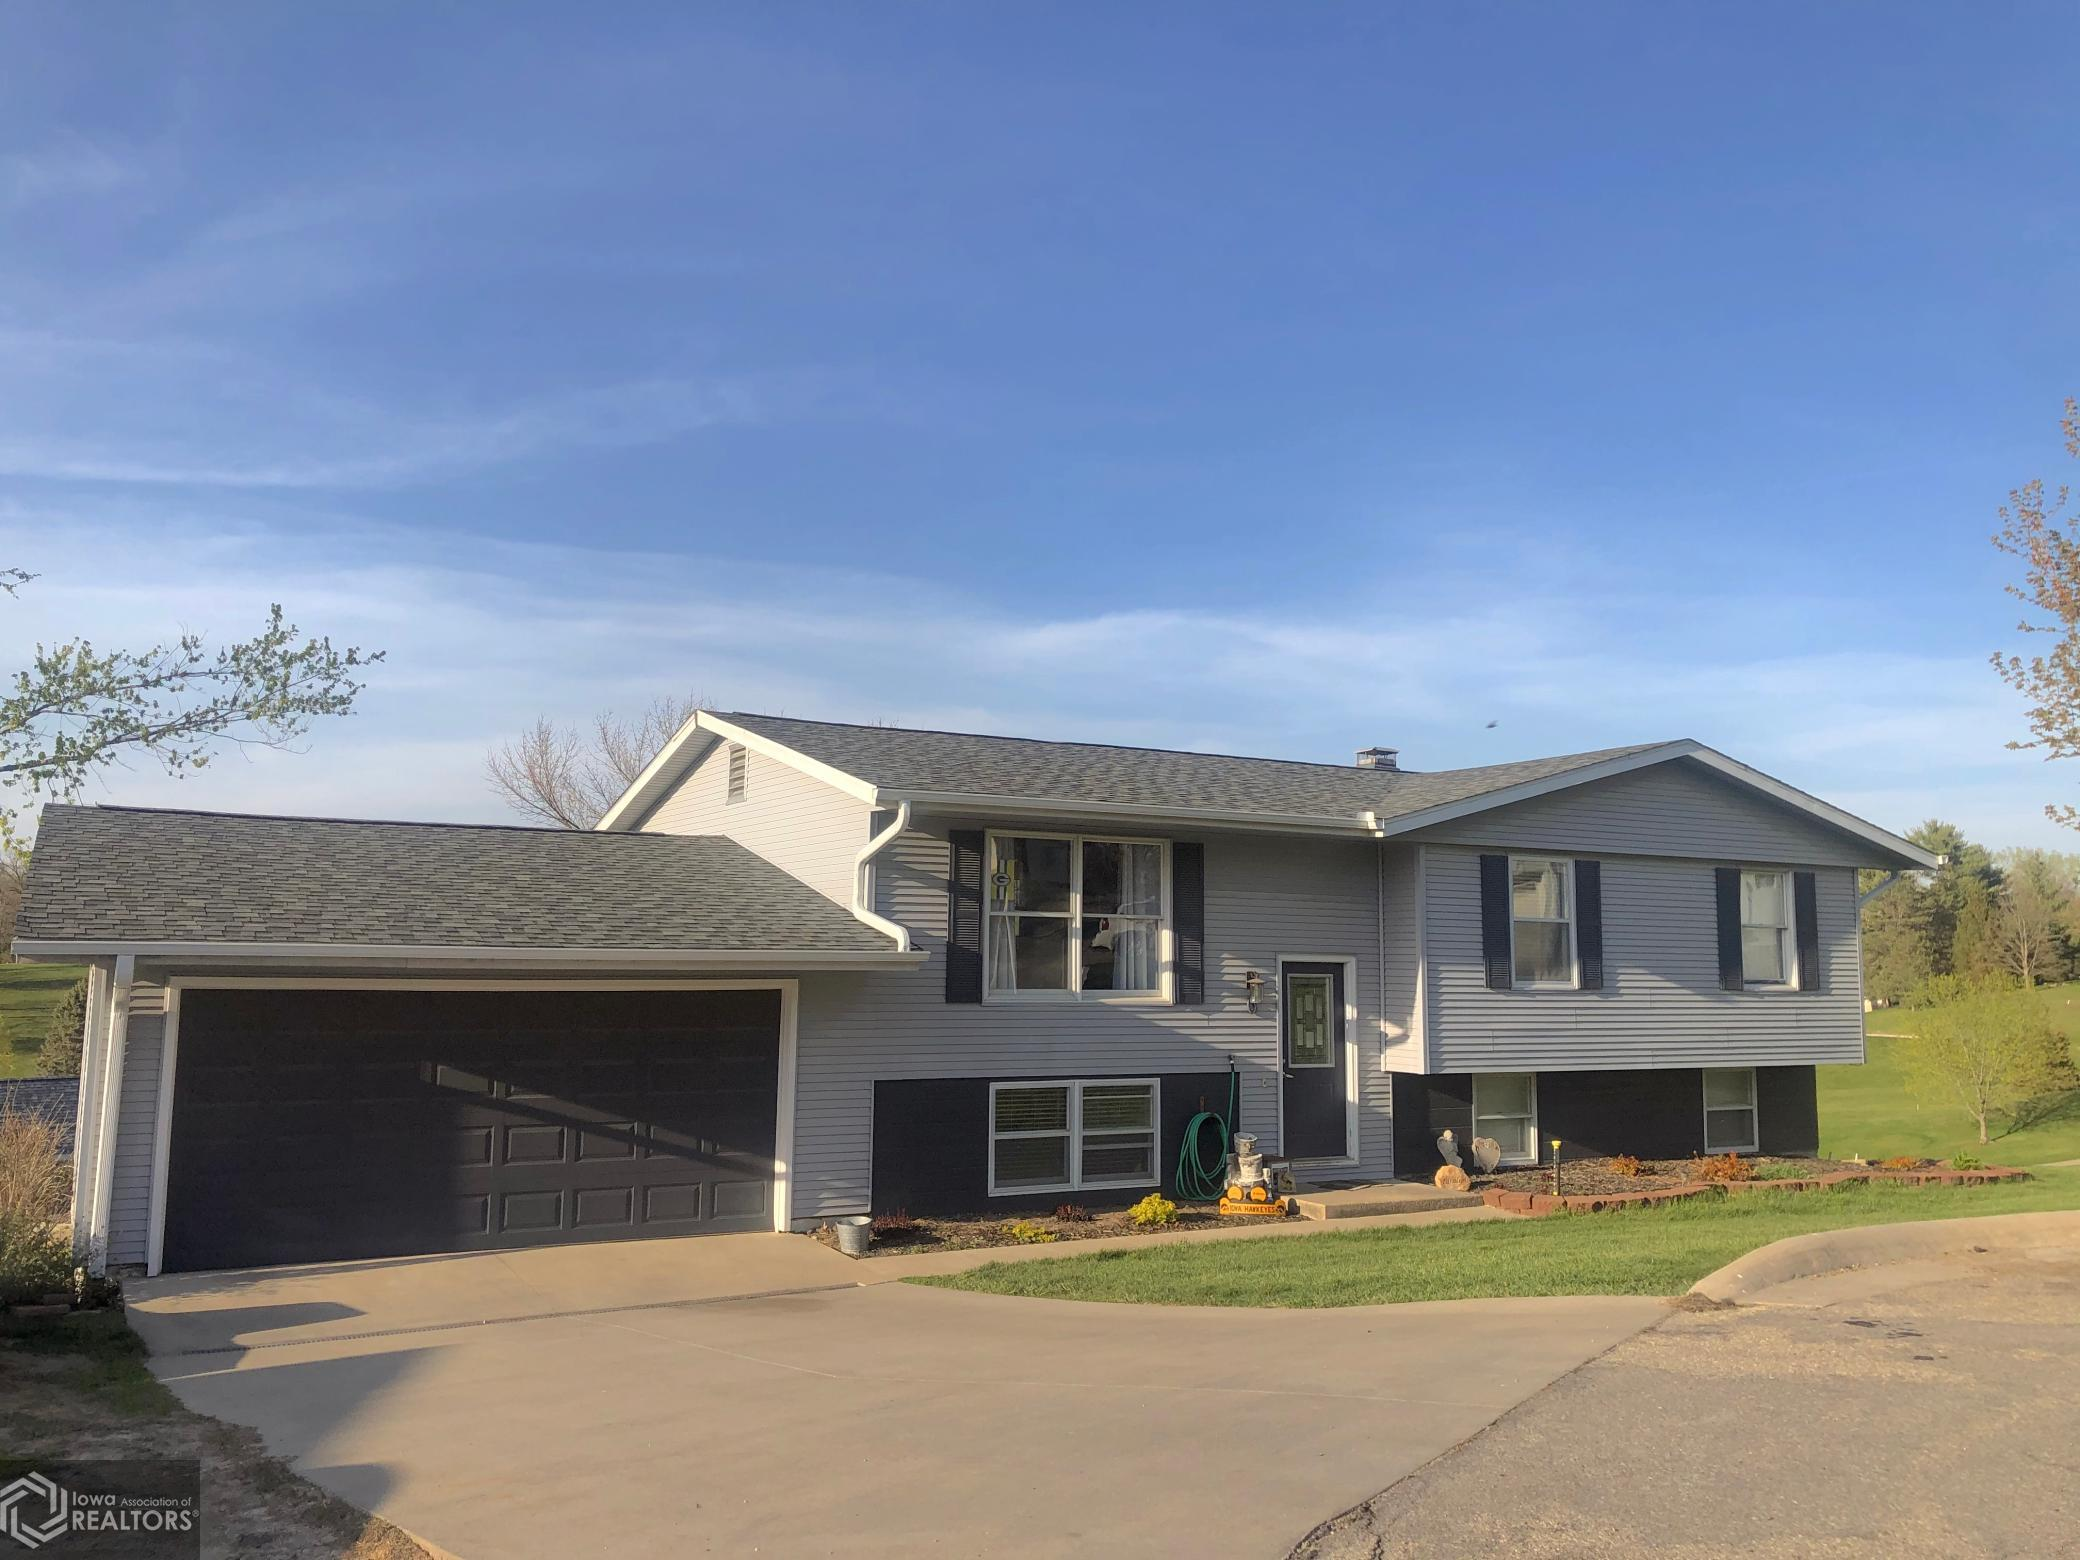 6 Valley View, Grinnell, Iowa 50112-3007, 4 Bedrooms Bedrooms, ,1 BathroomBathrooms,Single Family,For Sale,Valley View,5746504